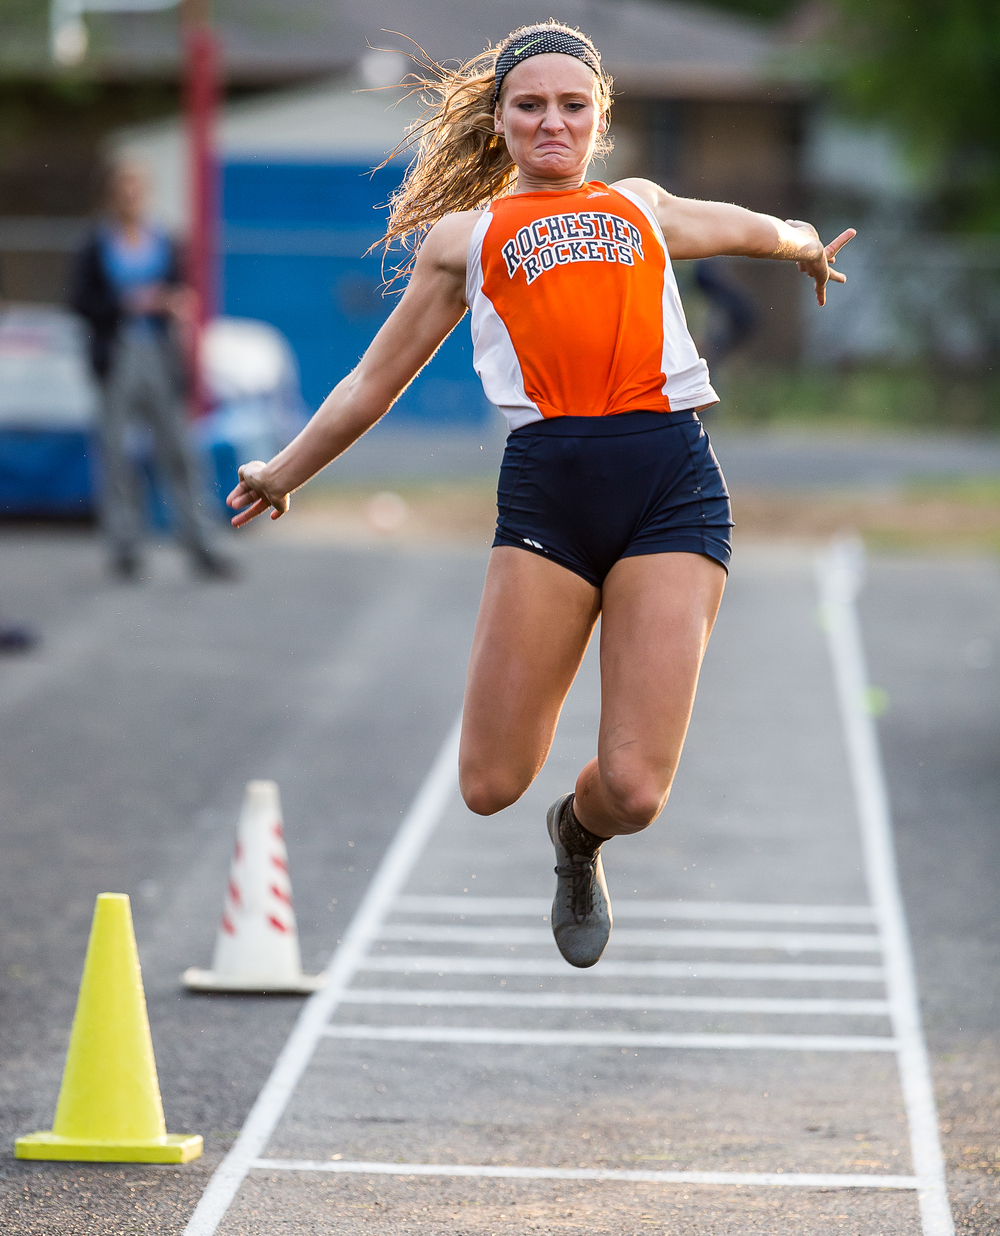 Rochester's Hailey Hollinshead competes in the Girls Triple Jump during the Girls Class 2A Sectional Track Meet at  Southeast High School, Thursday, May 14, 2015, in Springfield, Ill. Justin L. Fowler/The State Journal-Register